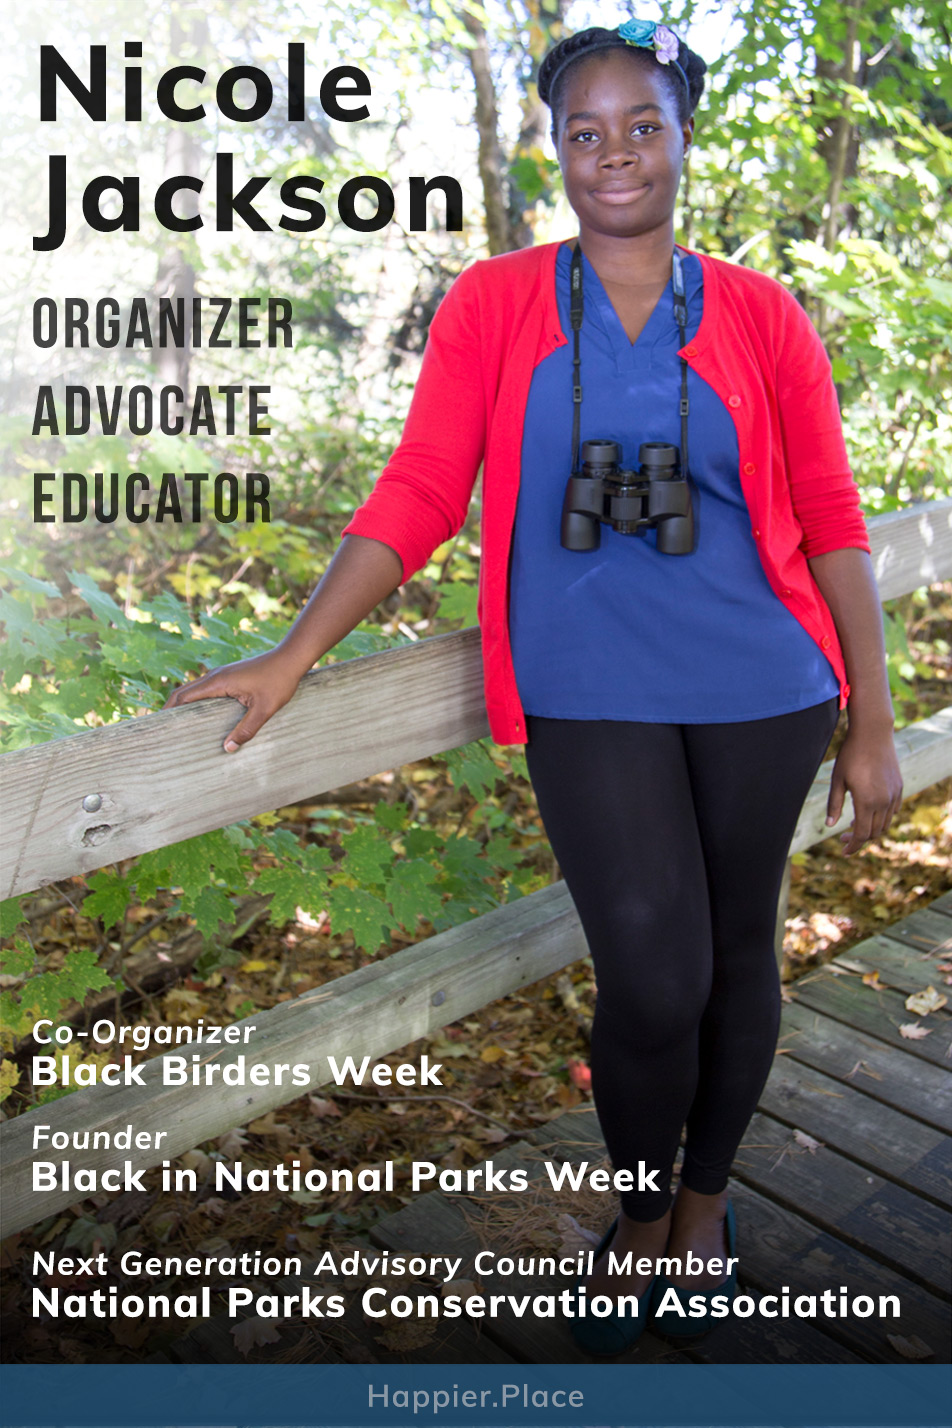 Founder of Black in National Parks Week, co-organizer of Black Birders Week, National Parks Conservation Association advisory council member Nicole Jackson